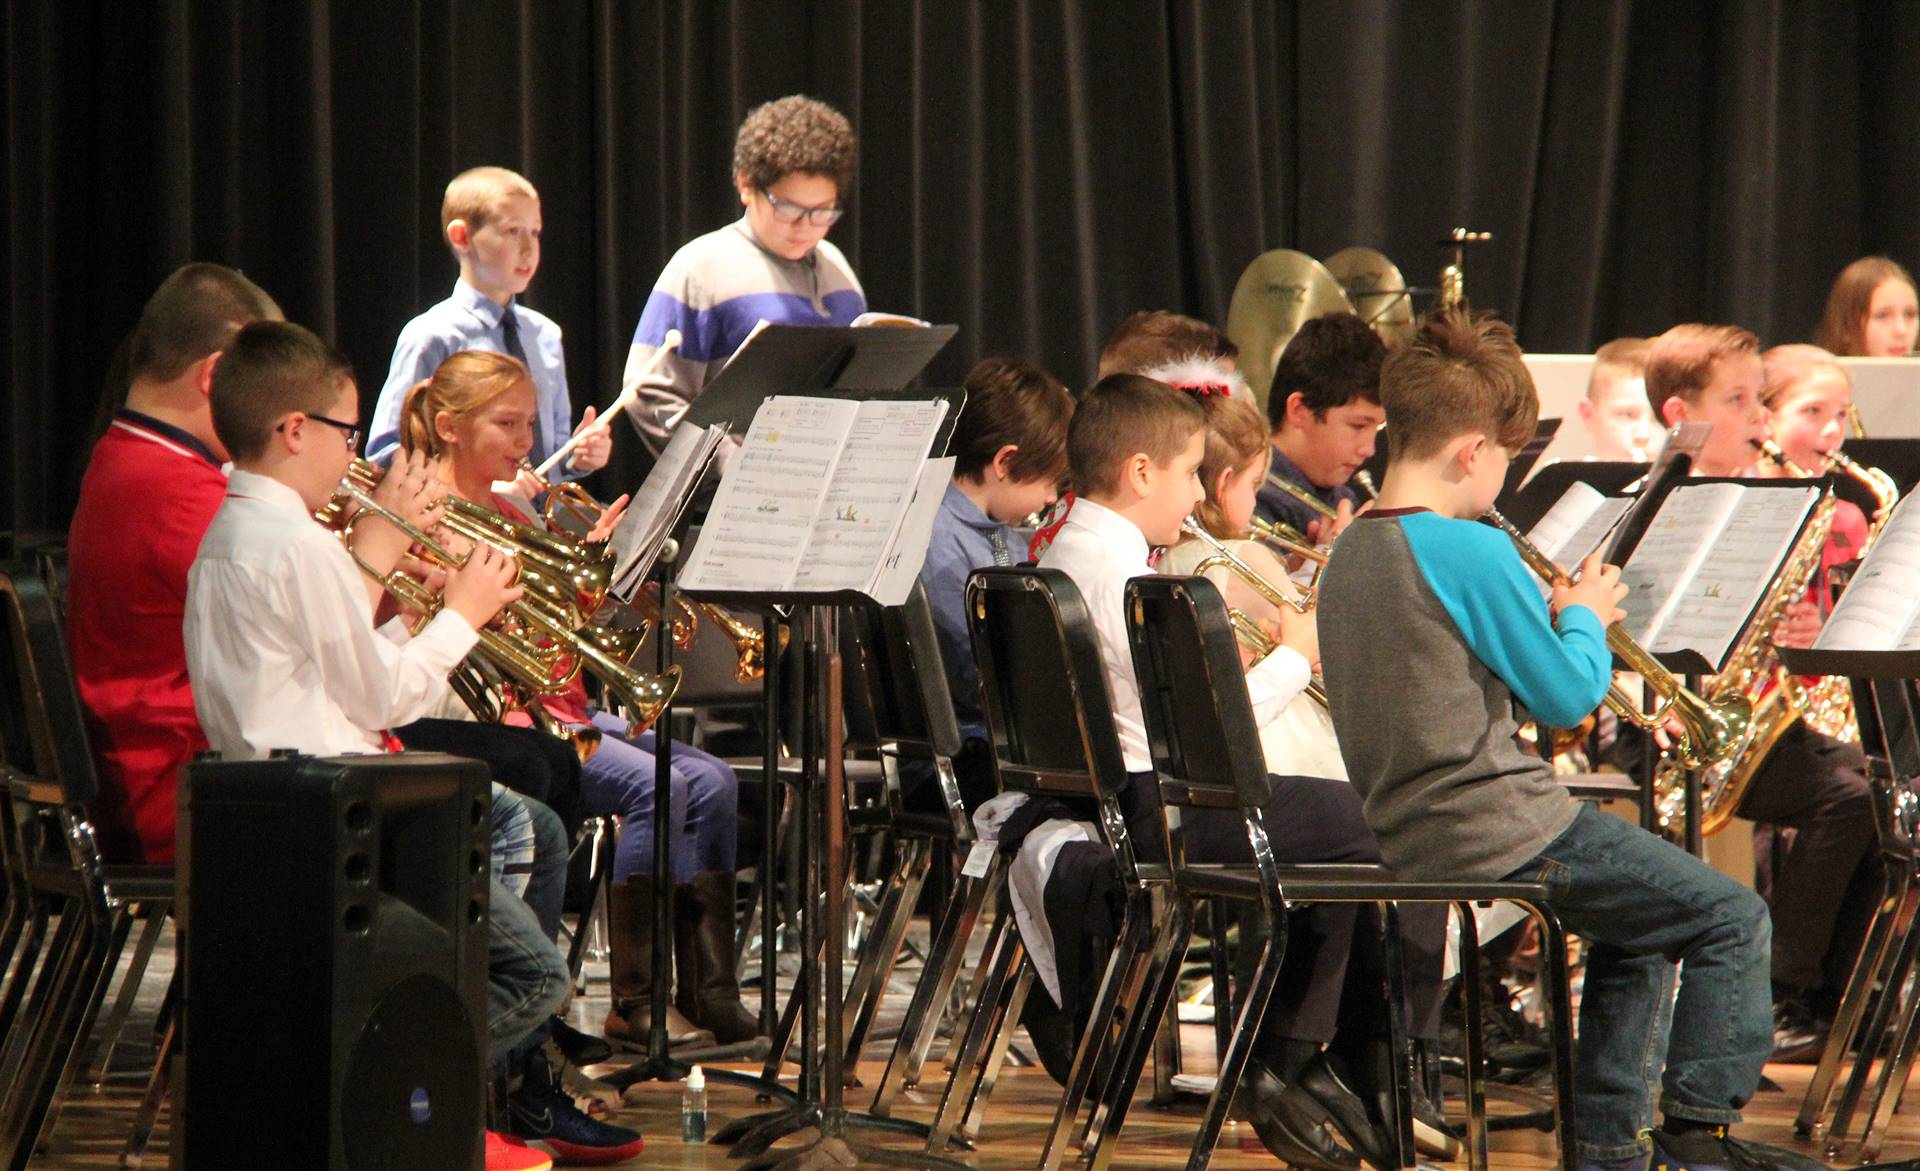 students playing band instruments in concert